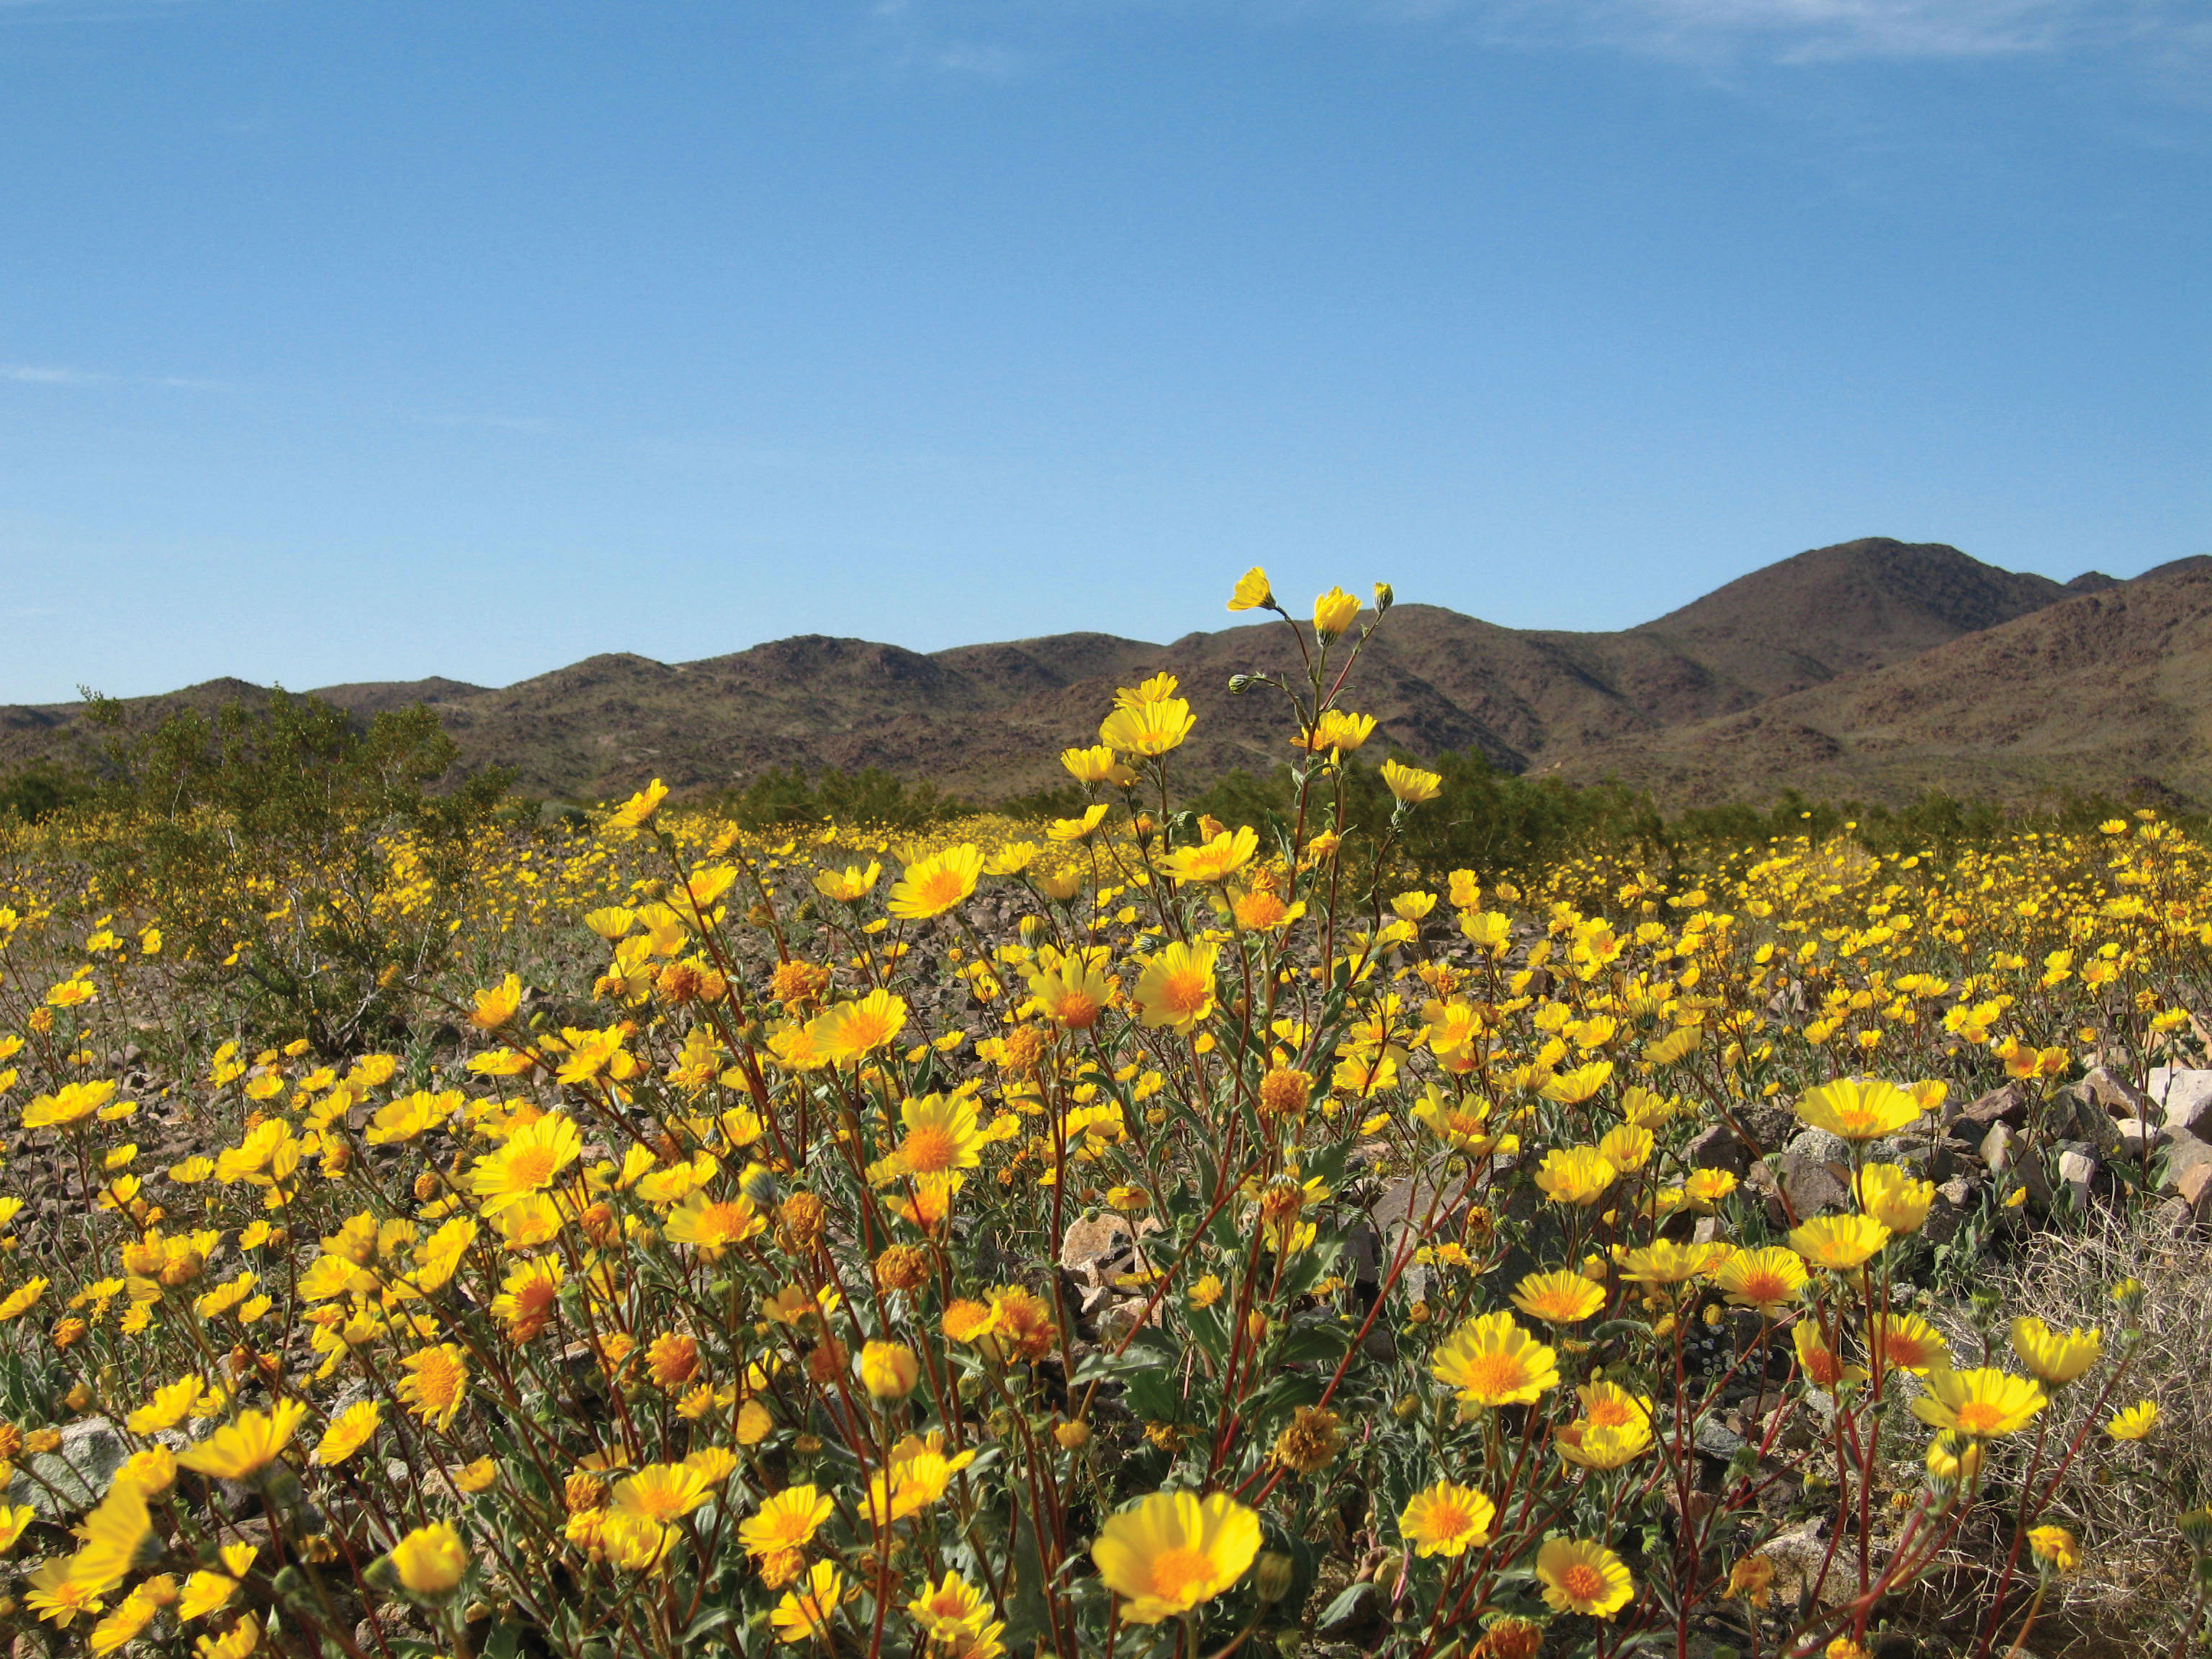 florencia gomez gerbi joshua tree national park hairy desert sunflower